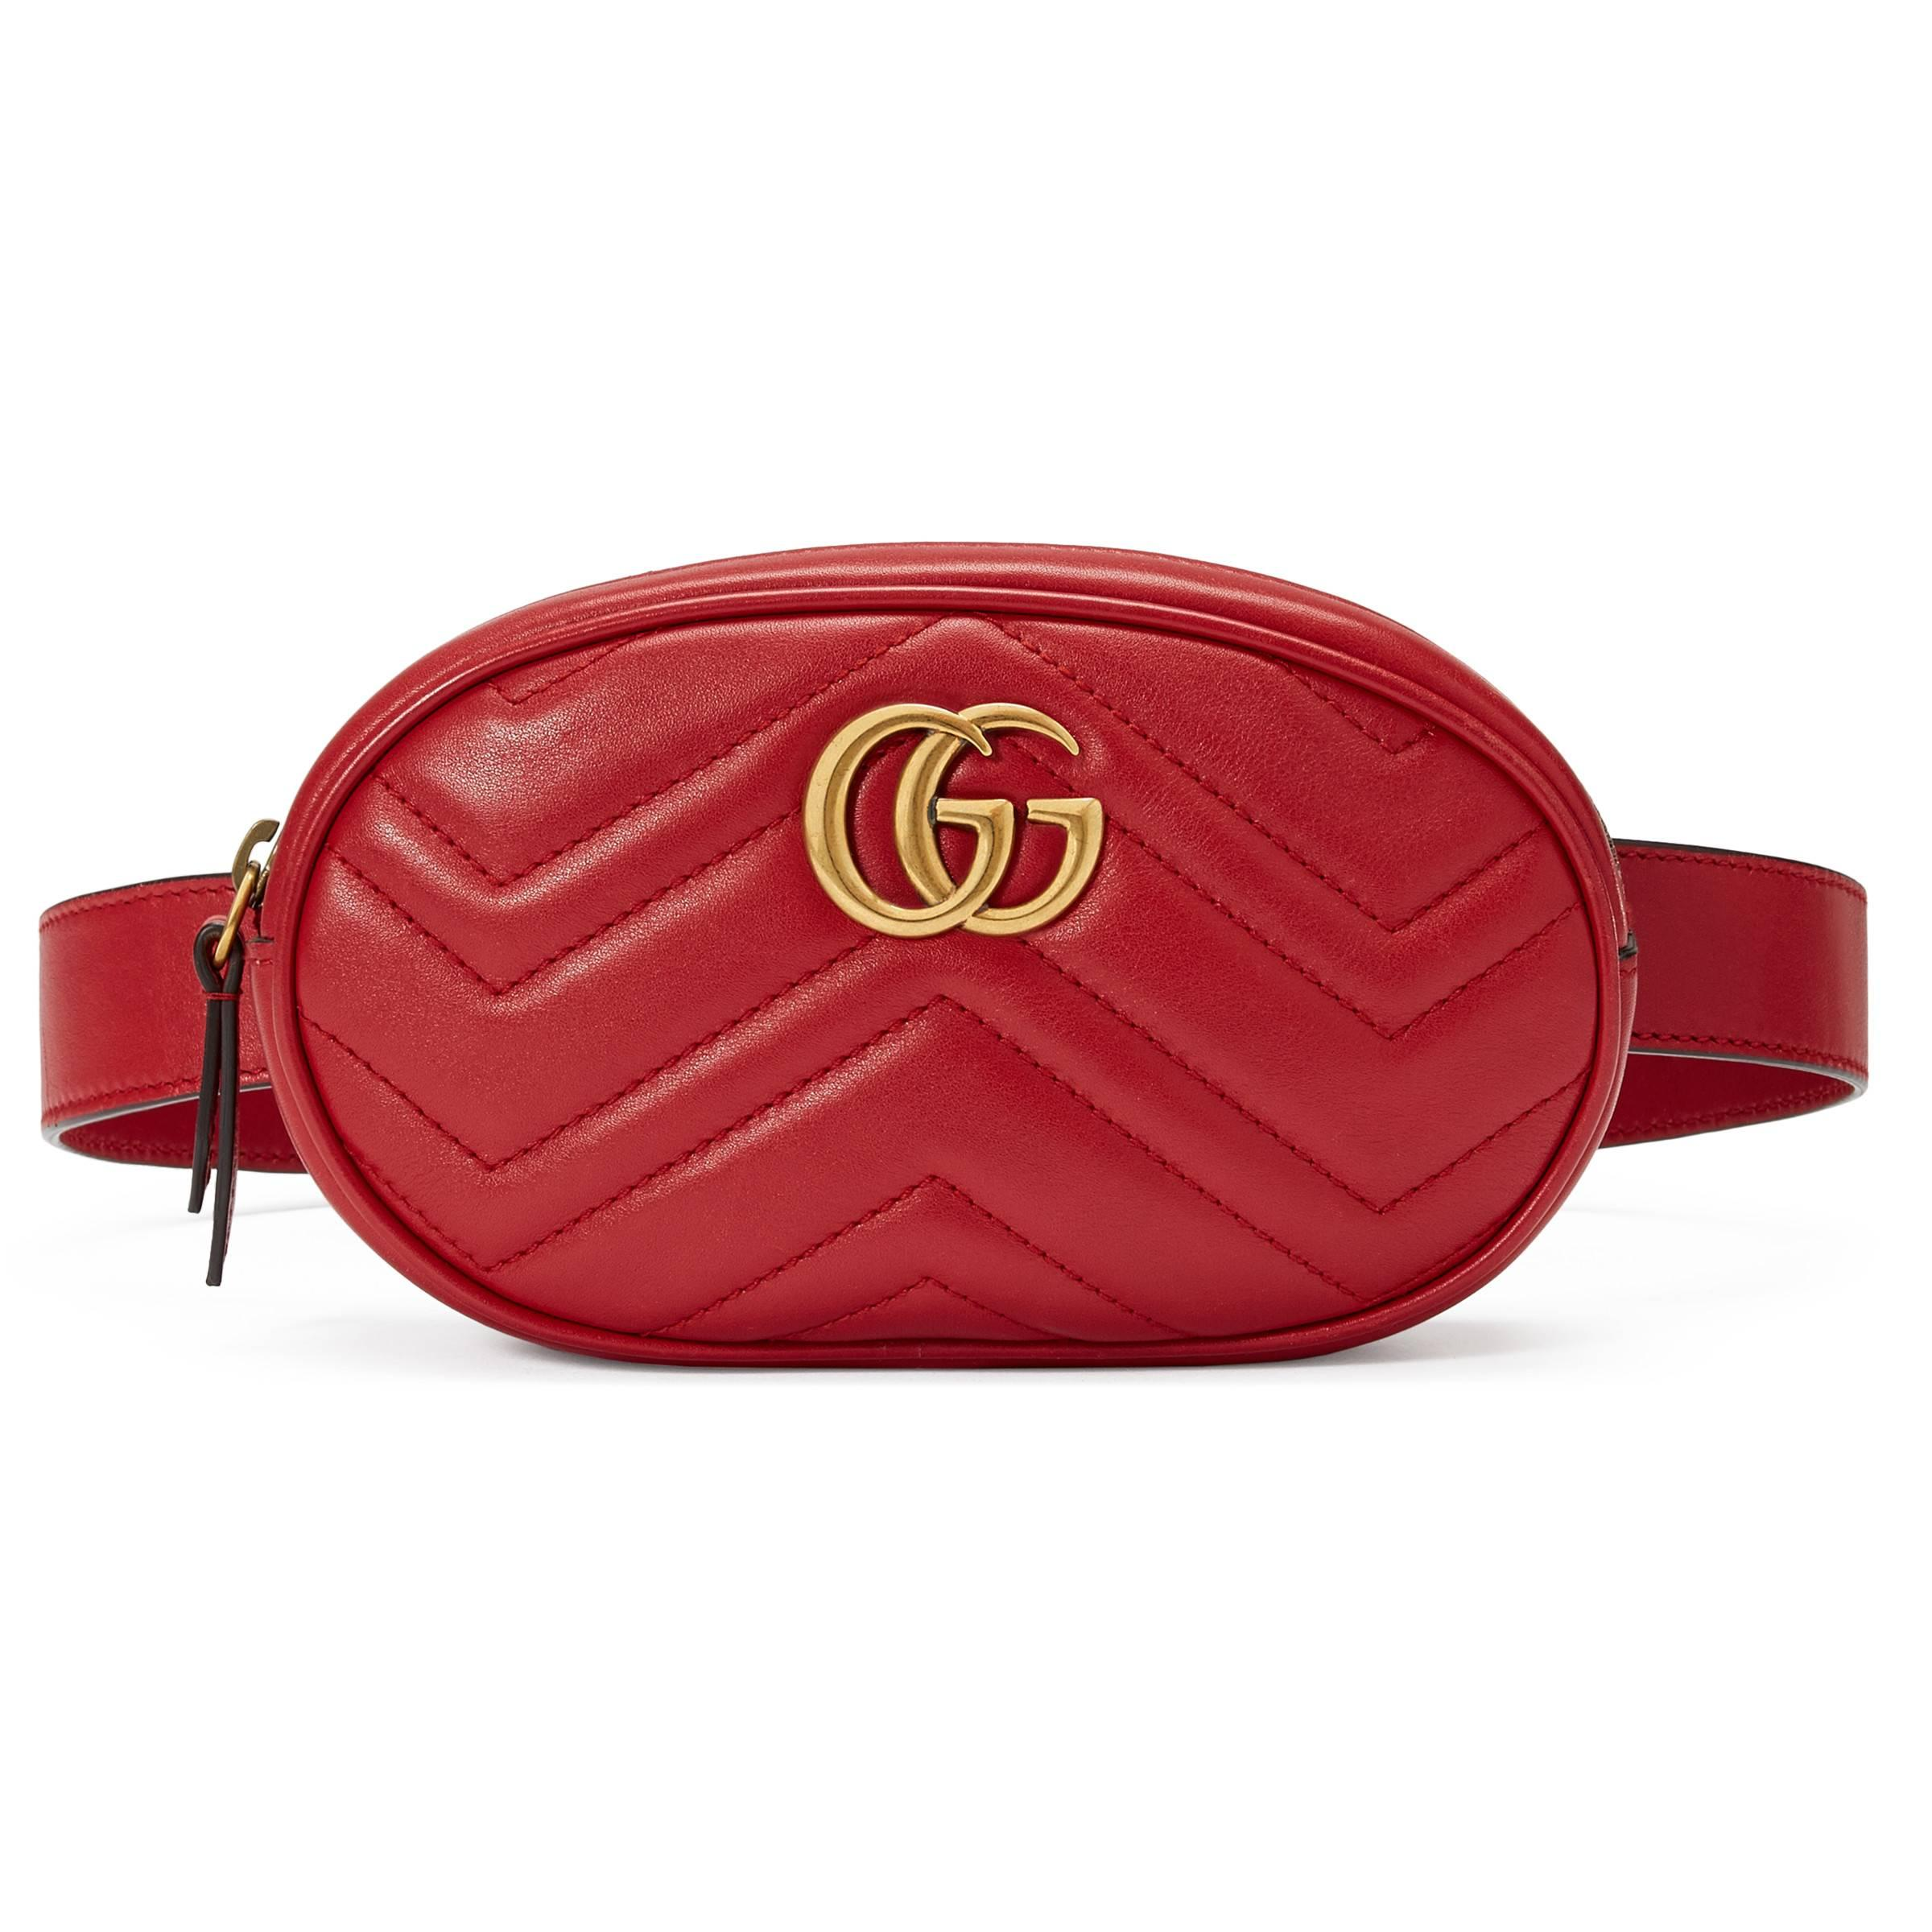 70a7a15ecb0067 Gucci Gg Marmont Matelassé Leather Belt Bag in Red - Lyst